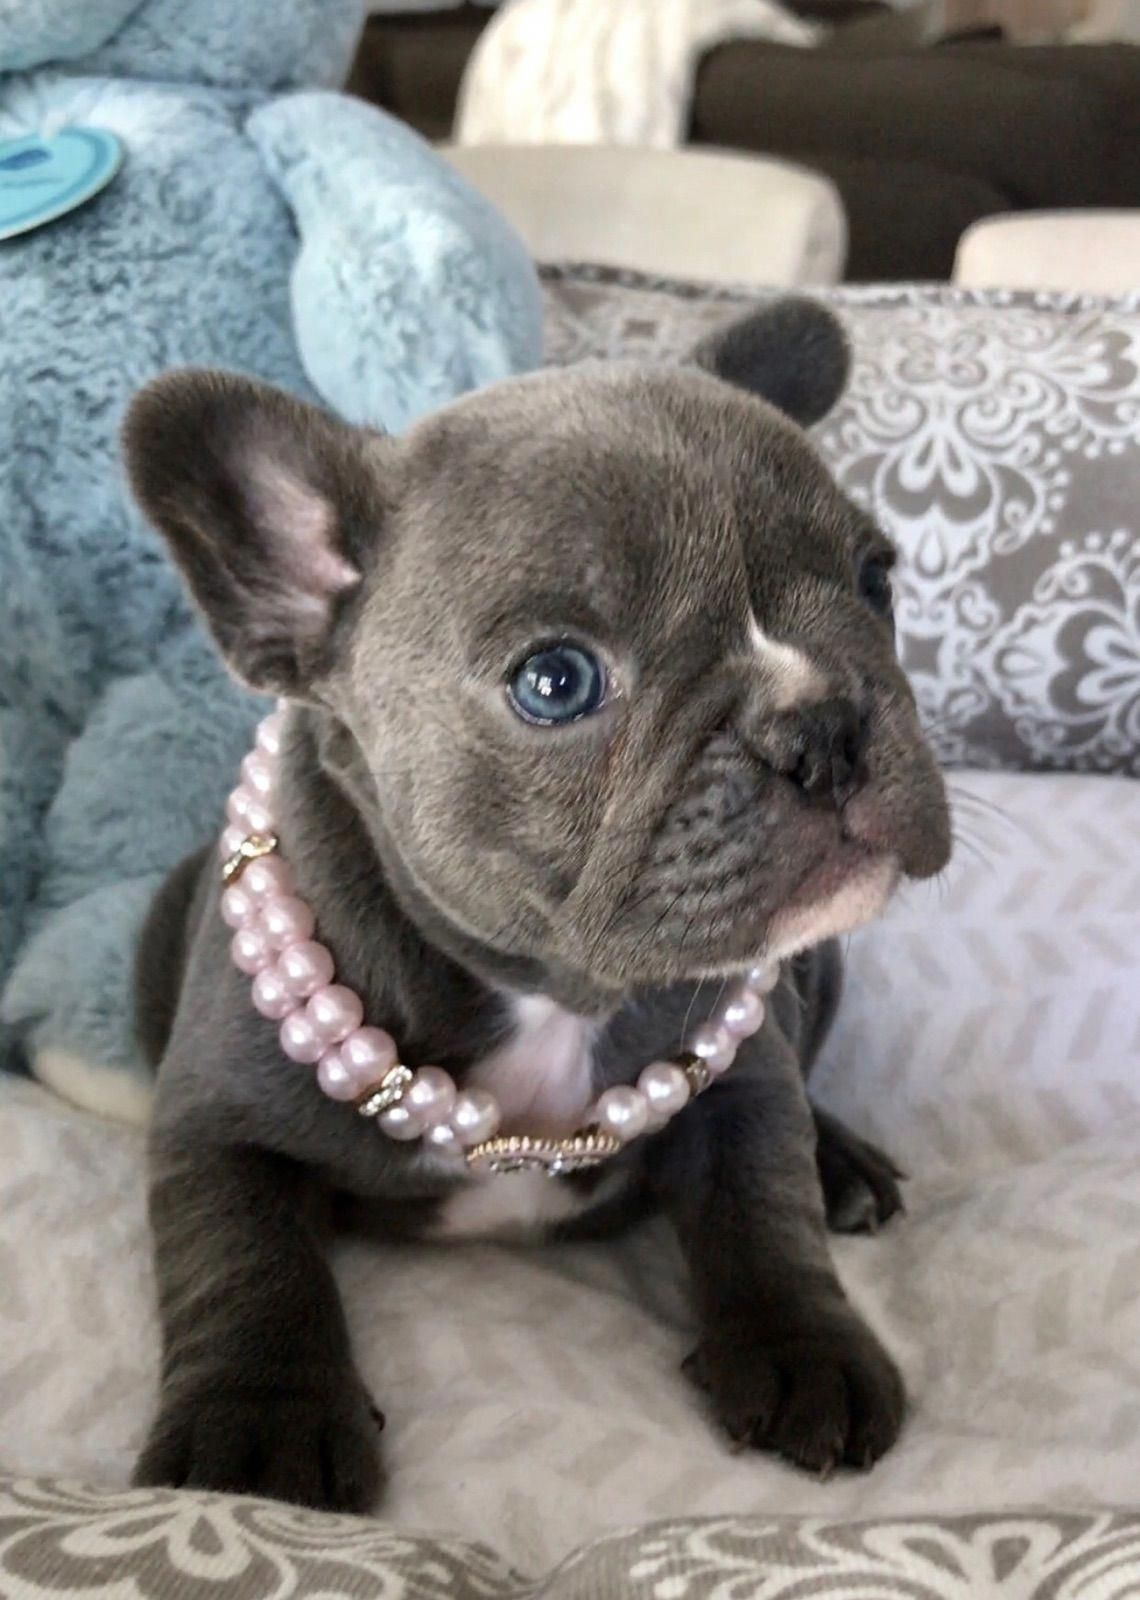 My Sweet Little Rosie Www Poeticfrenchbulldogs Com French Bulldog Puppi Blue French Bulldog Puppies French Bulldog Puppies Bulldog Puppies For Sale